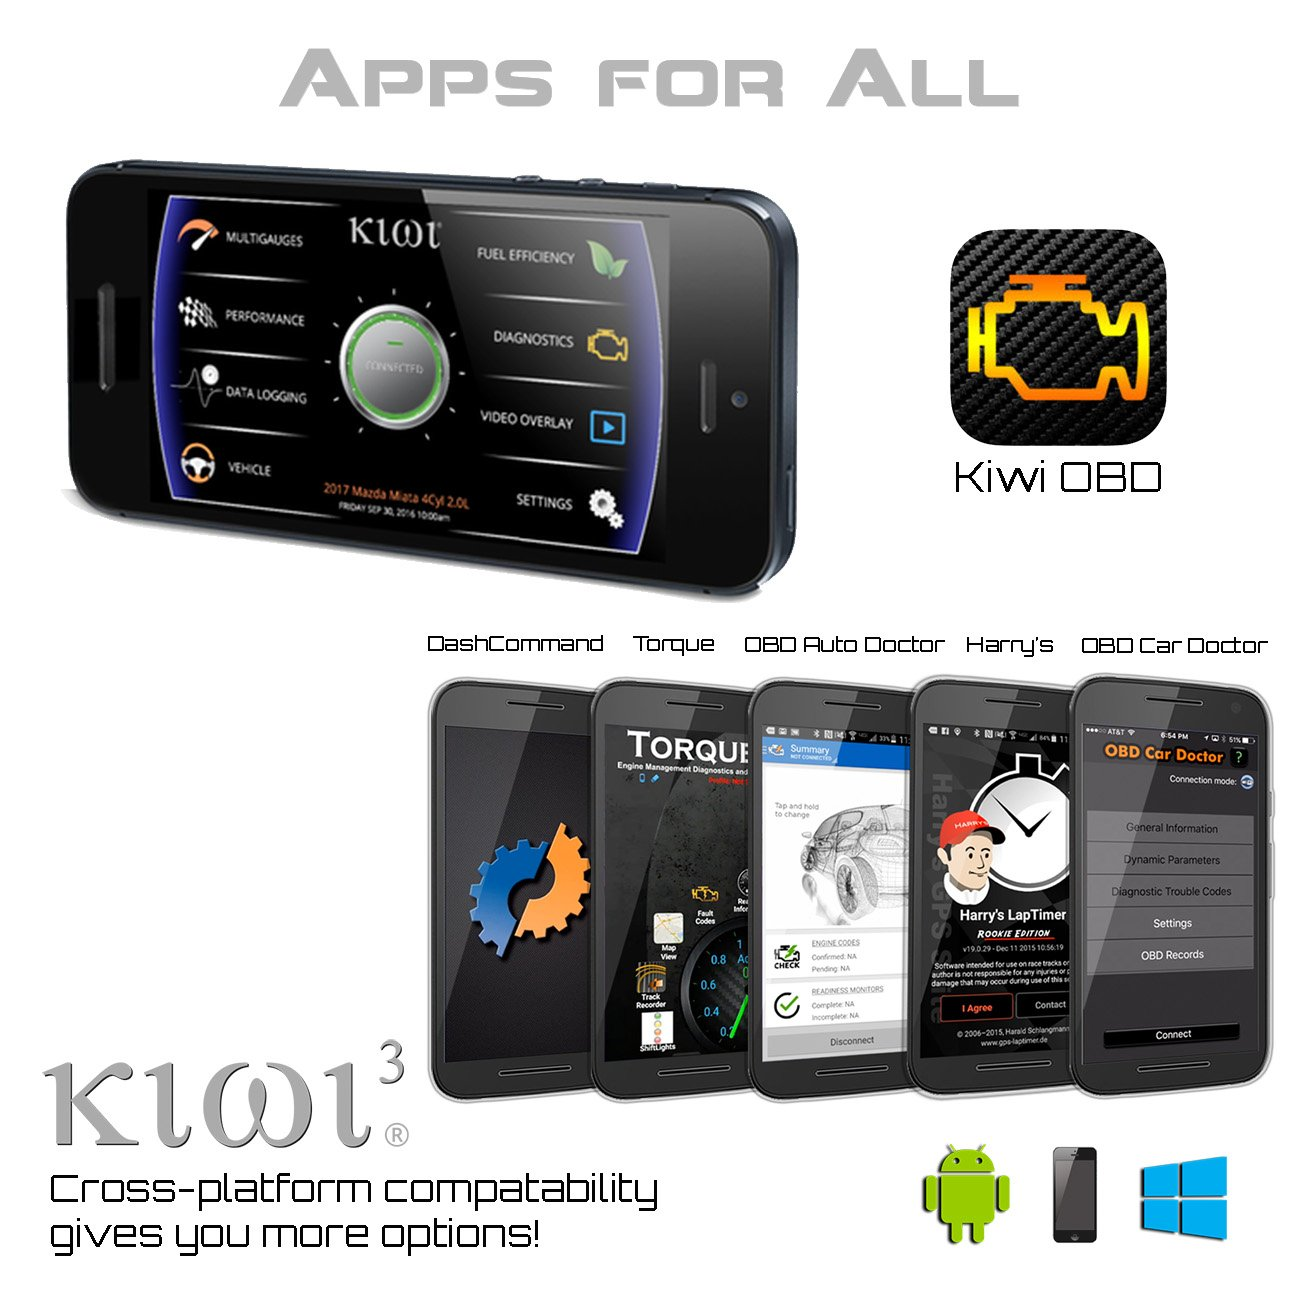 PLX Devices Kiwi 3 Bluetooth OBD2 OBDII Diagnostic Scan Tool for Android, Apple, Windows Mobile by PLX Devices (Image #6)